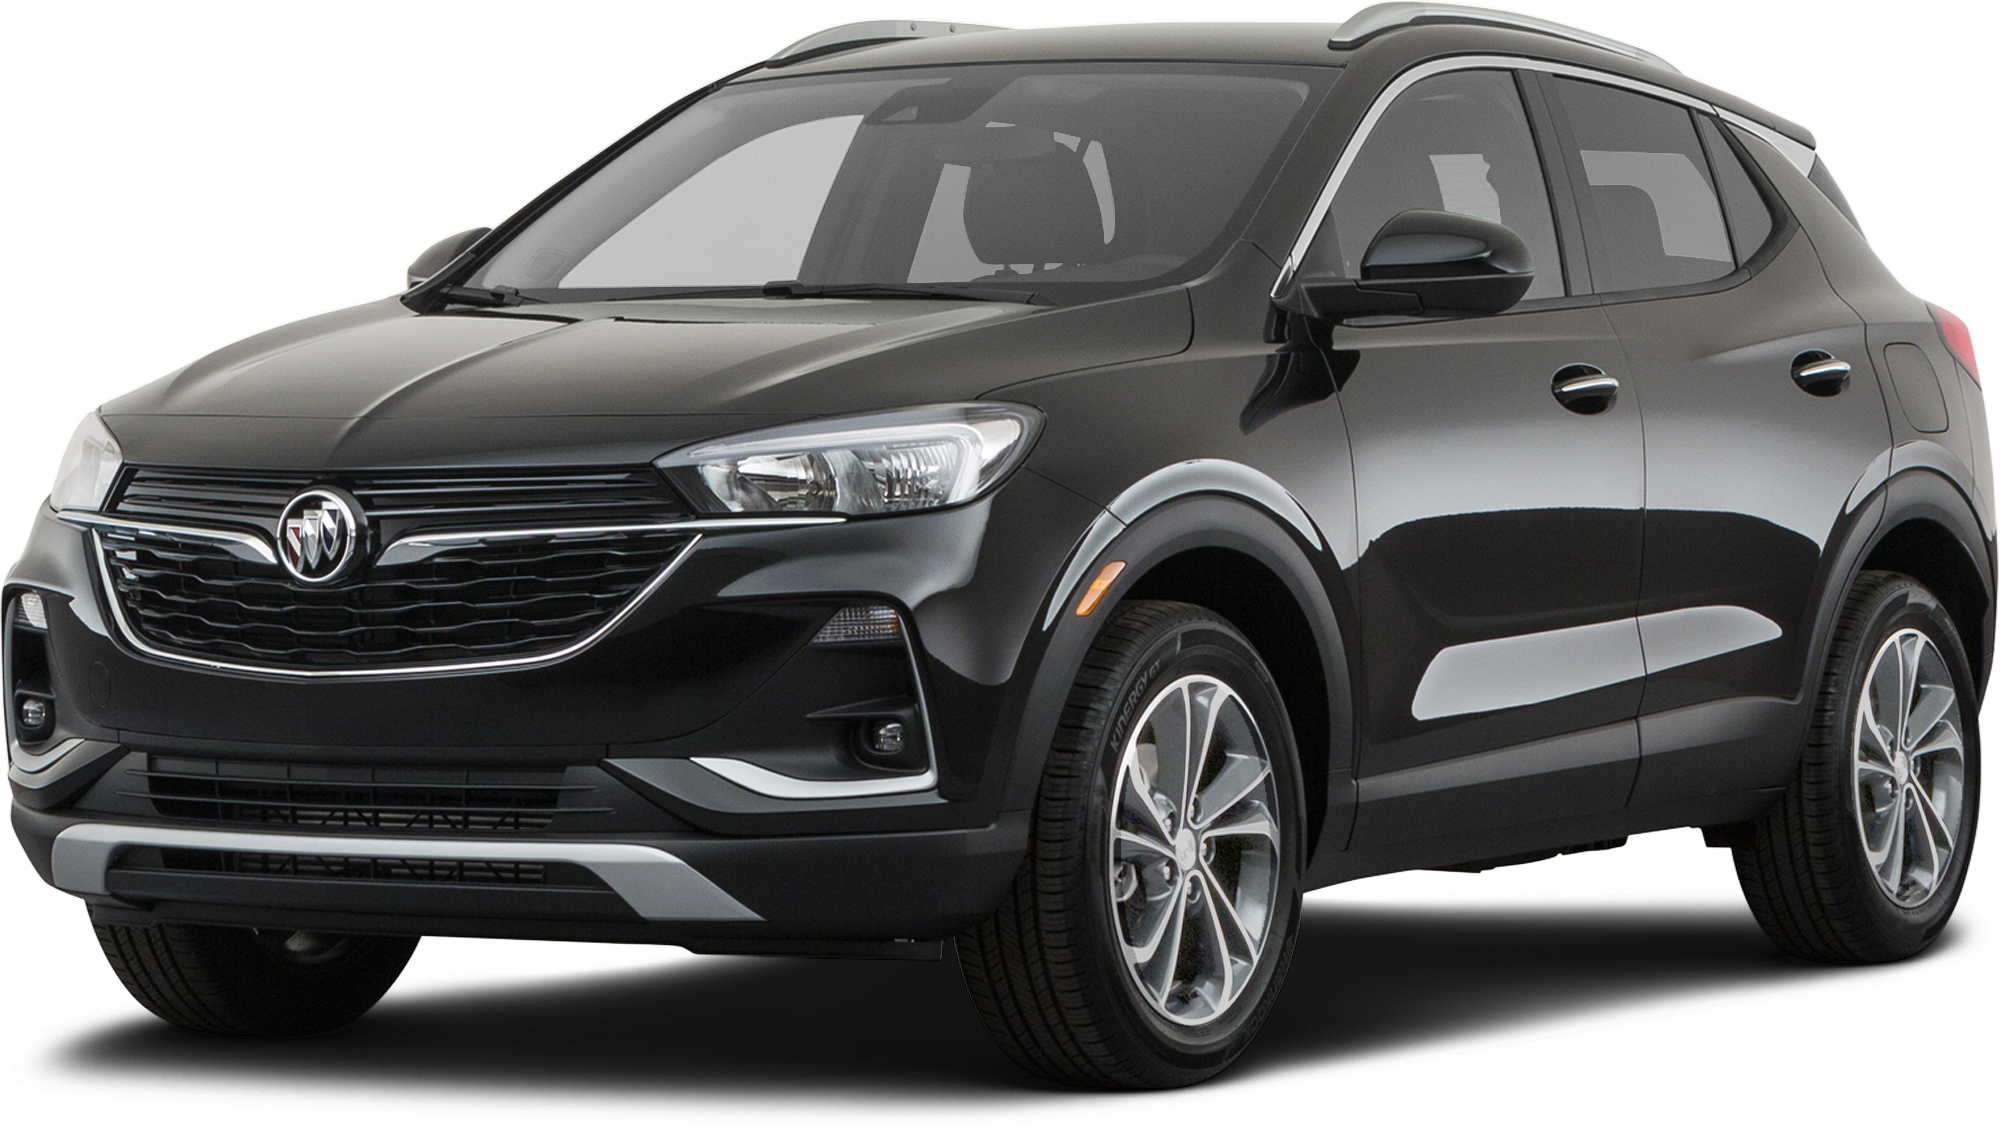 2020 Buick Encore Gx Incentives Specials Offers In Marshall Mn